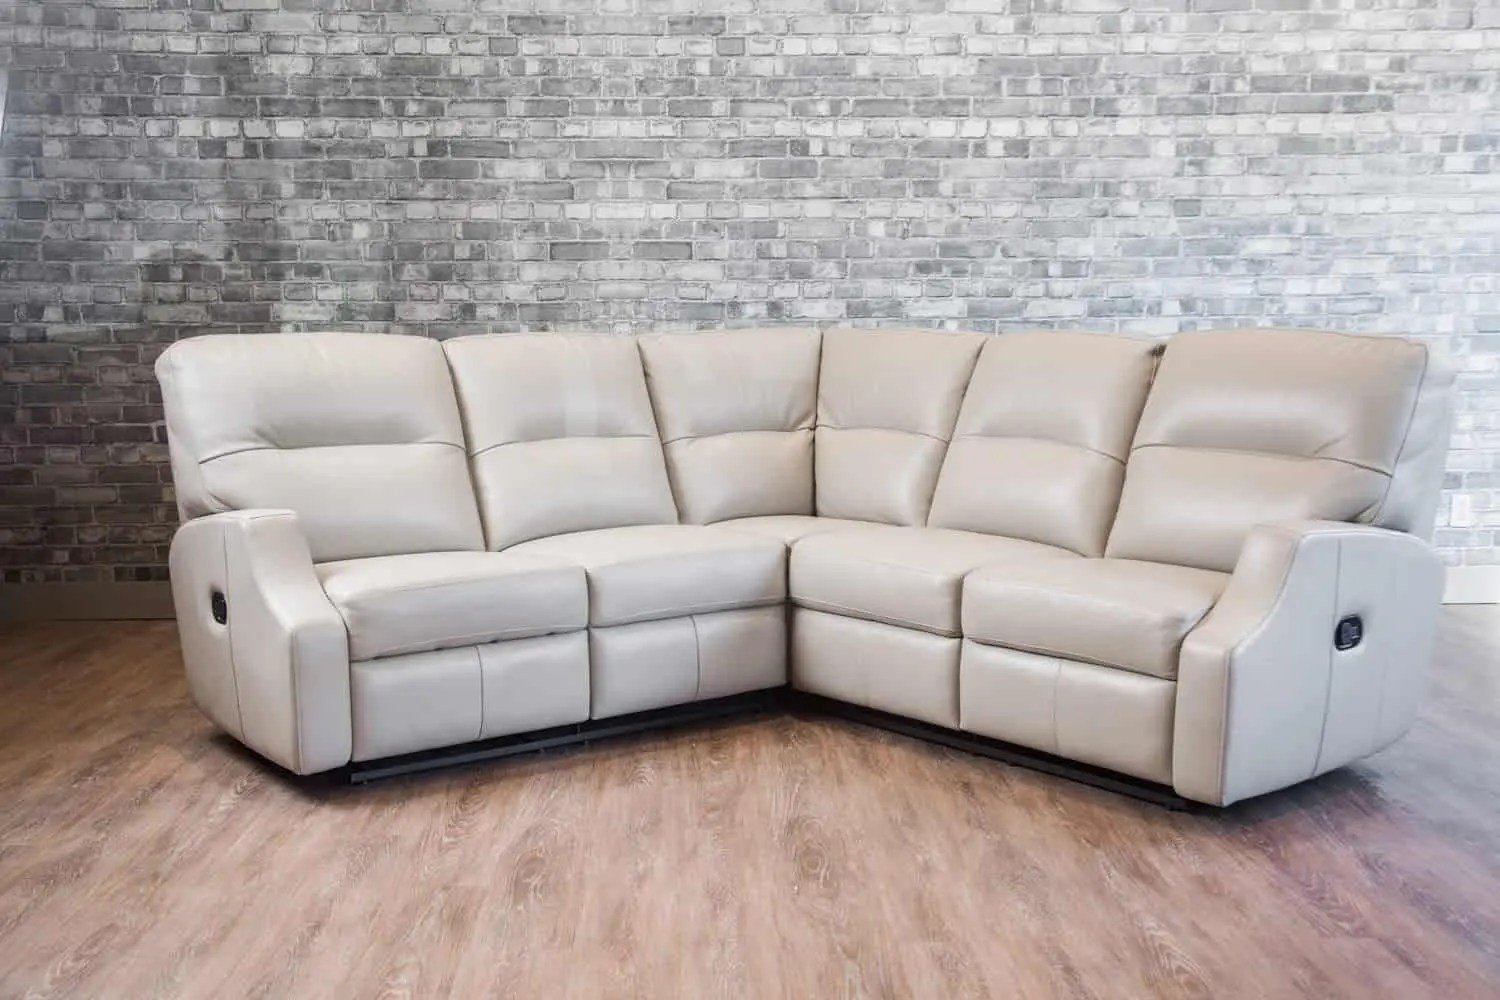 sectional reclining leather sofas sofa cleaning brush online the saturn canada s boss sectionals